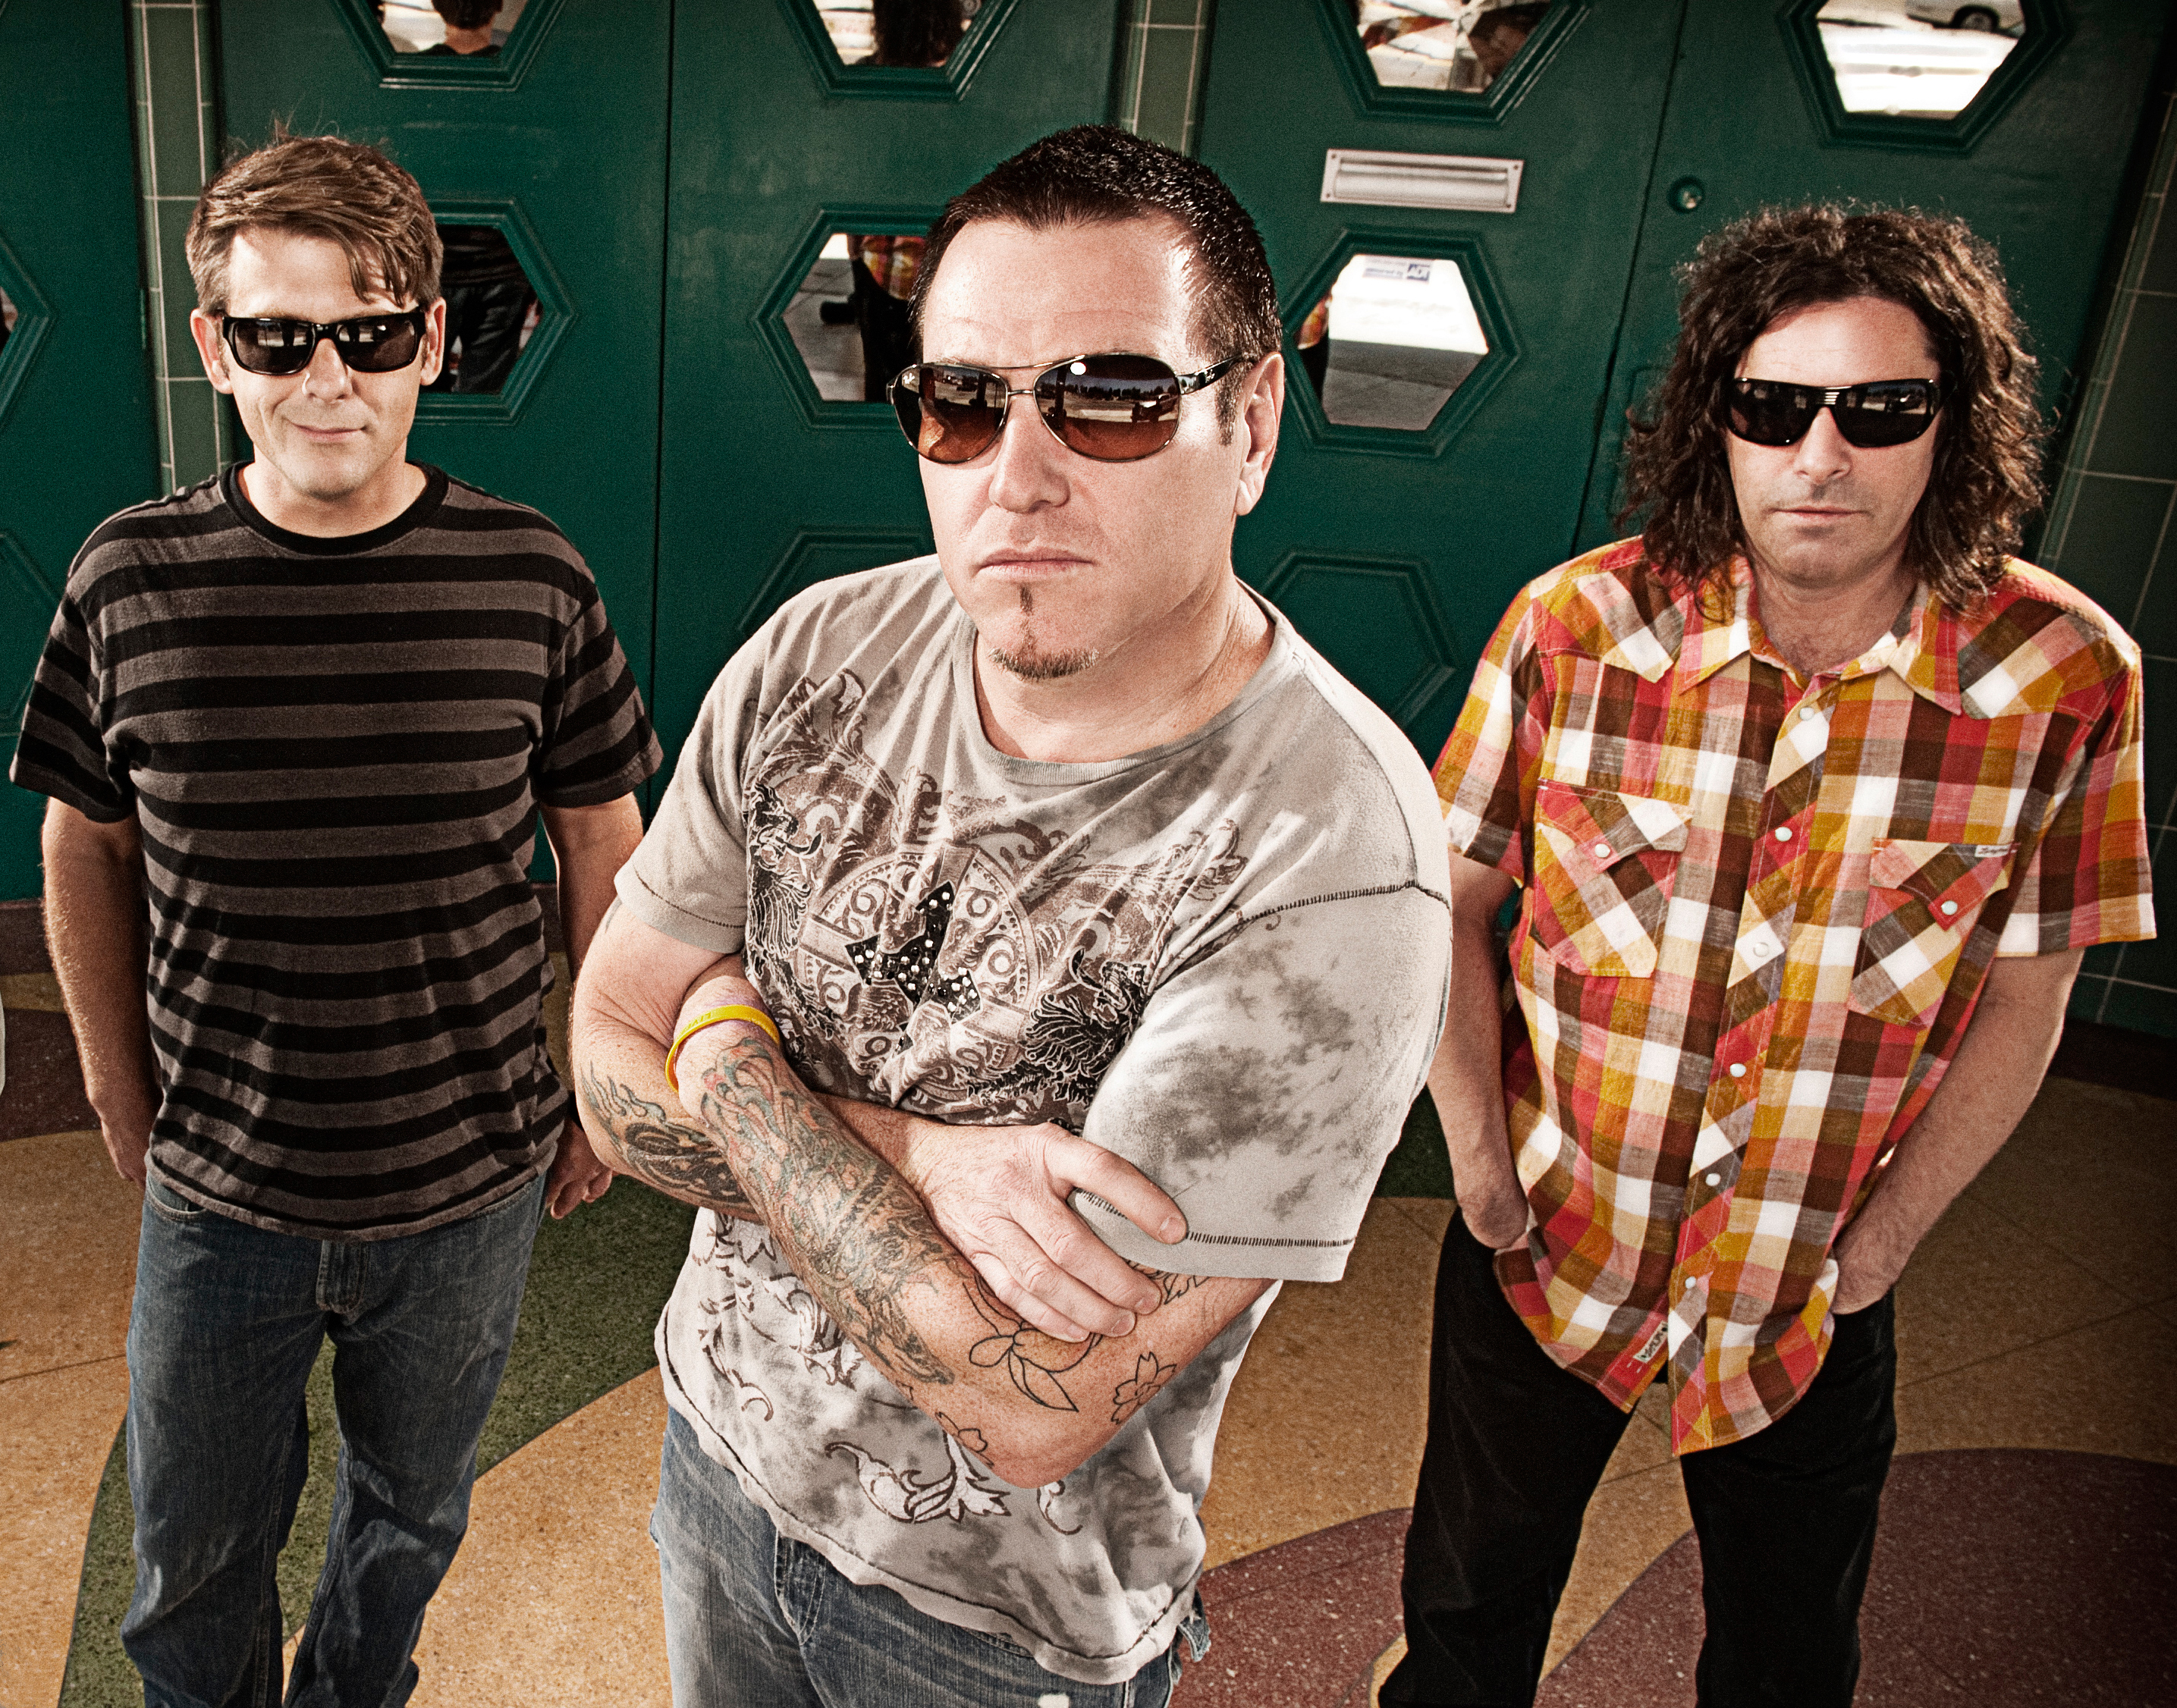 Oakland A's Apologize For Late Night Twitter Fight With Smash Mouth - Stereogum